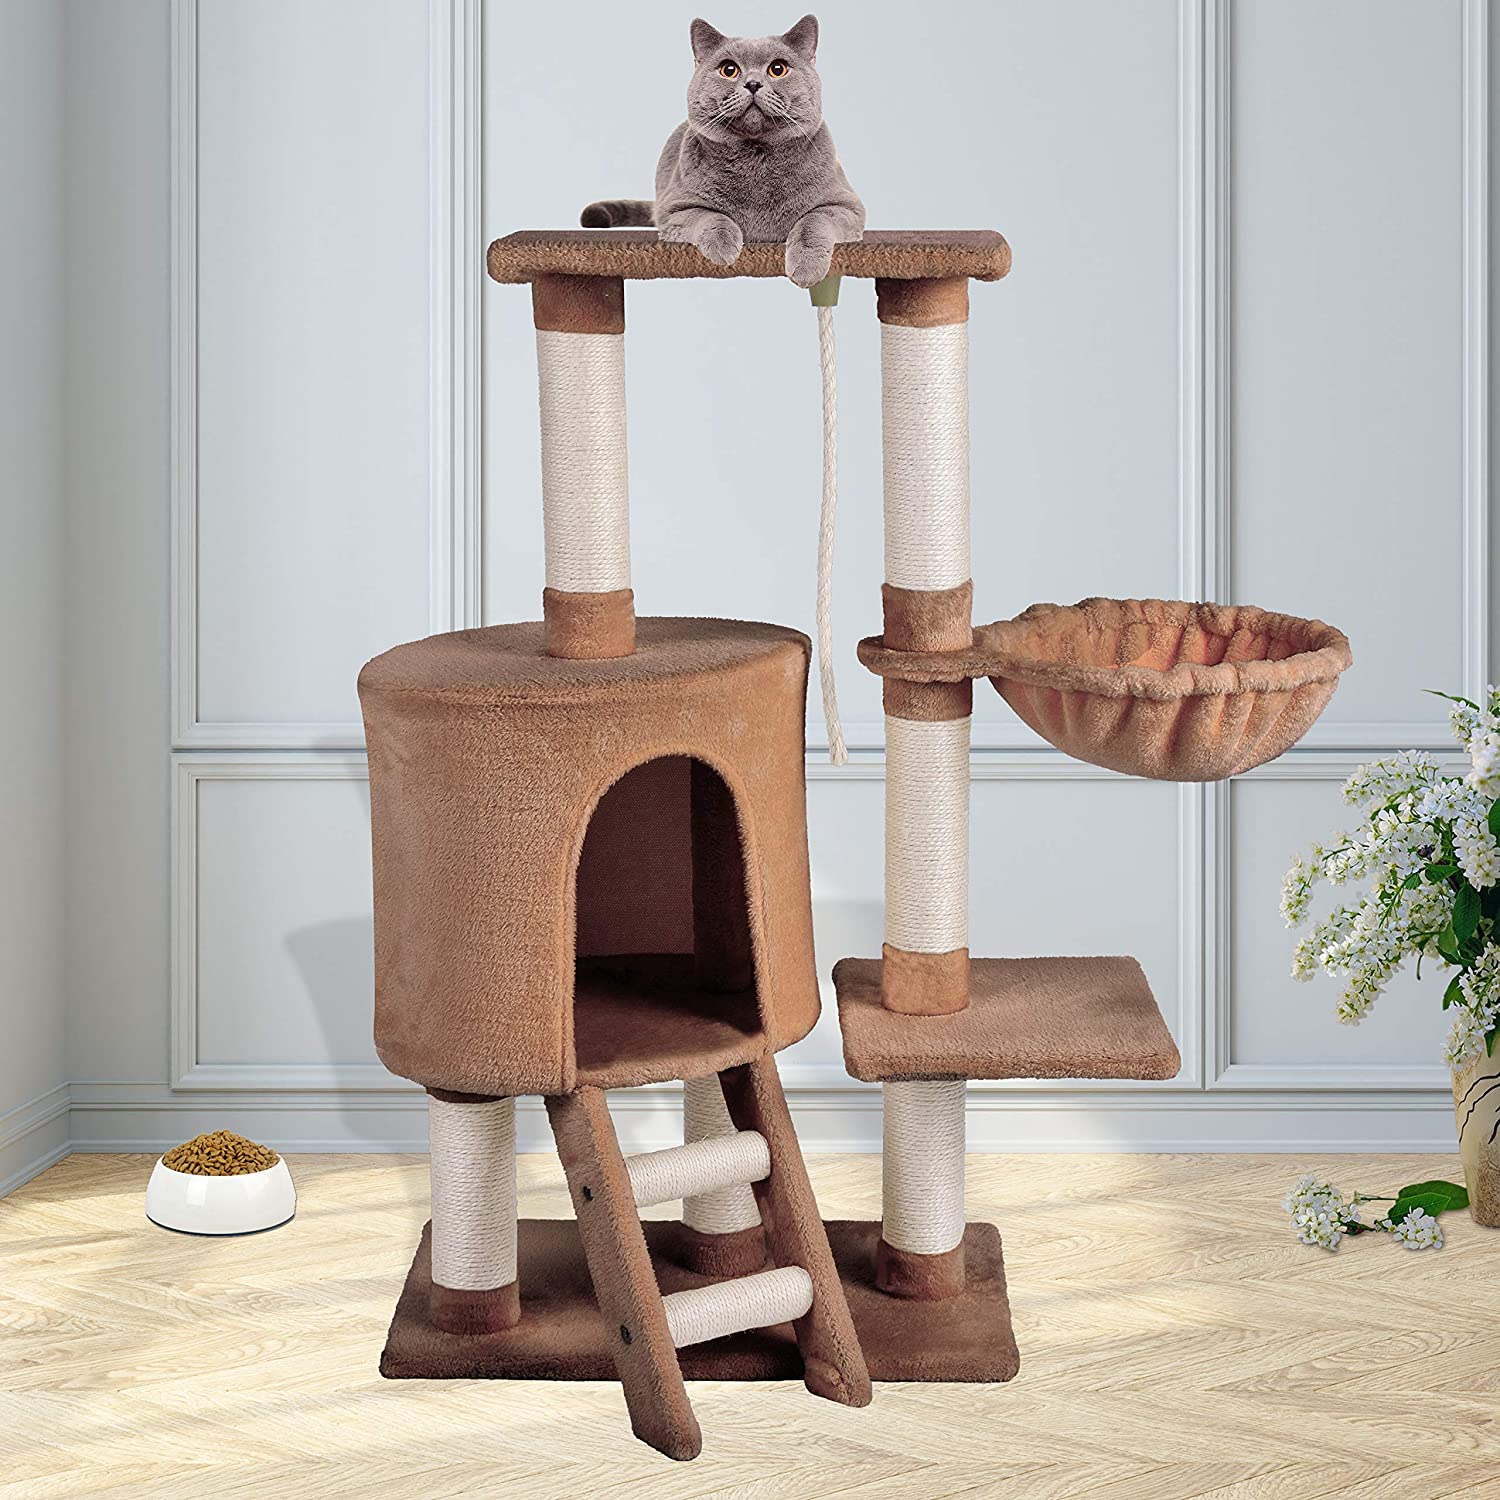 KExing Cat Tree Scratching Post Climbing Tree Sisal Plush with Hammock and Rope 96cm Brown